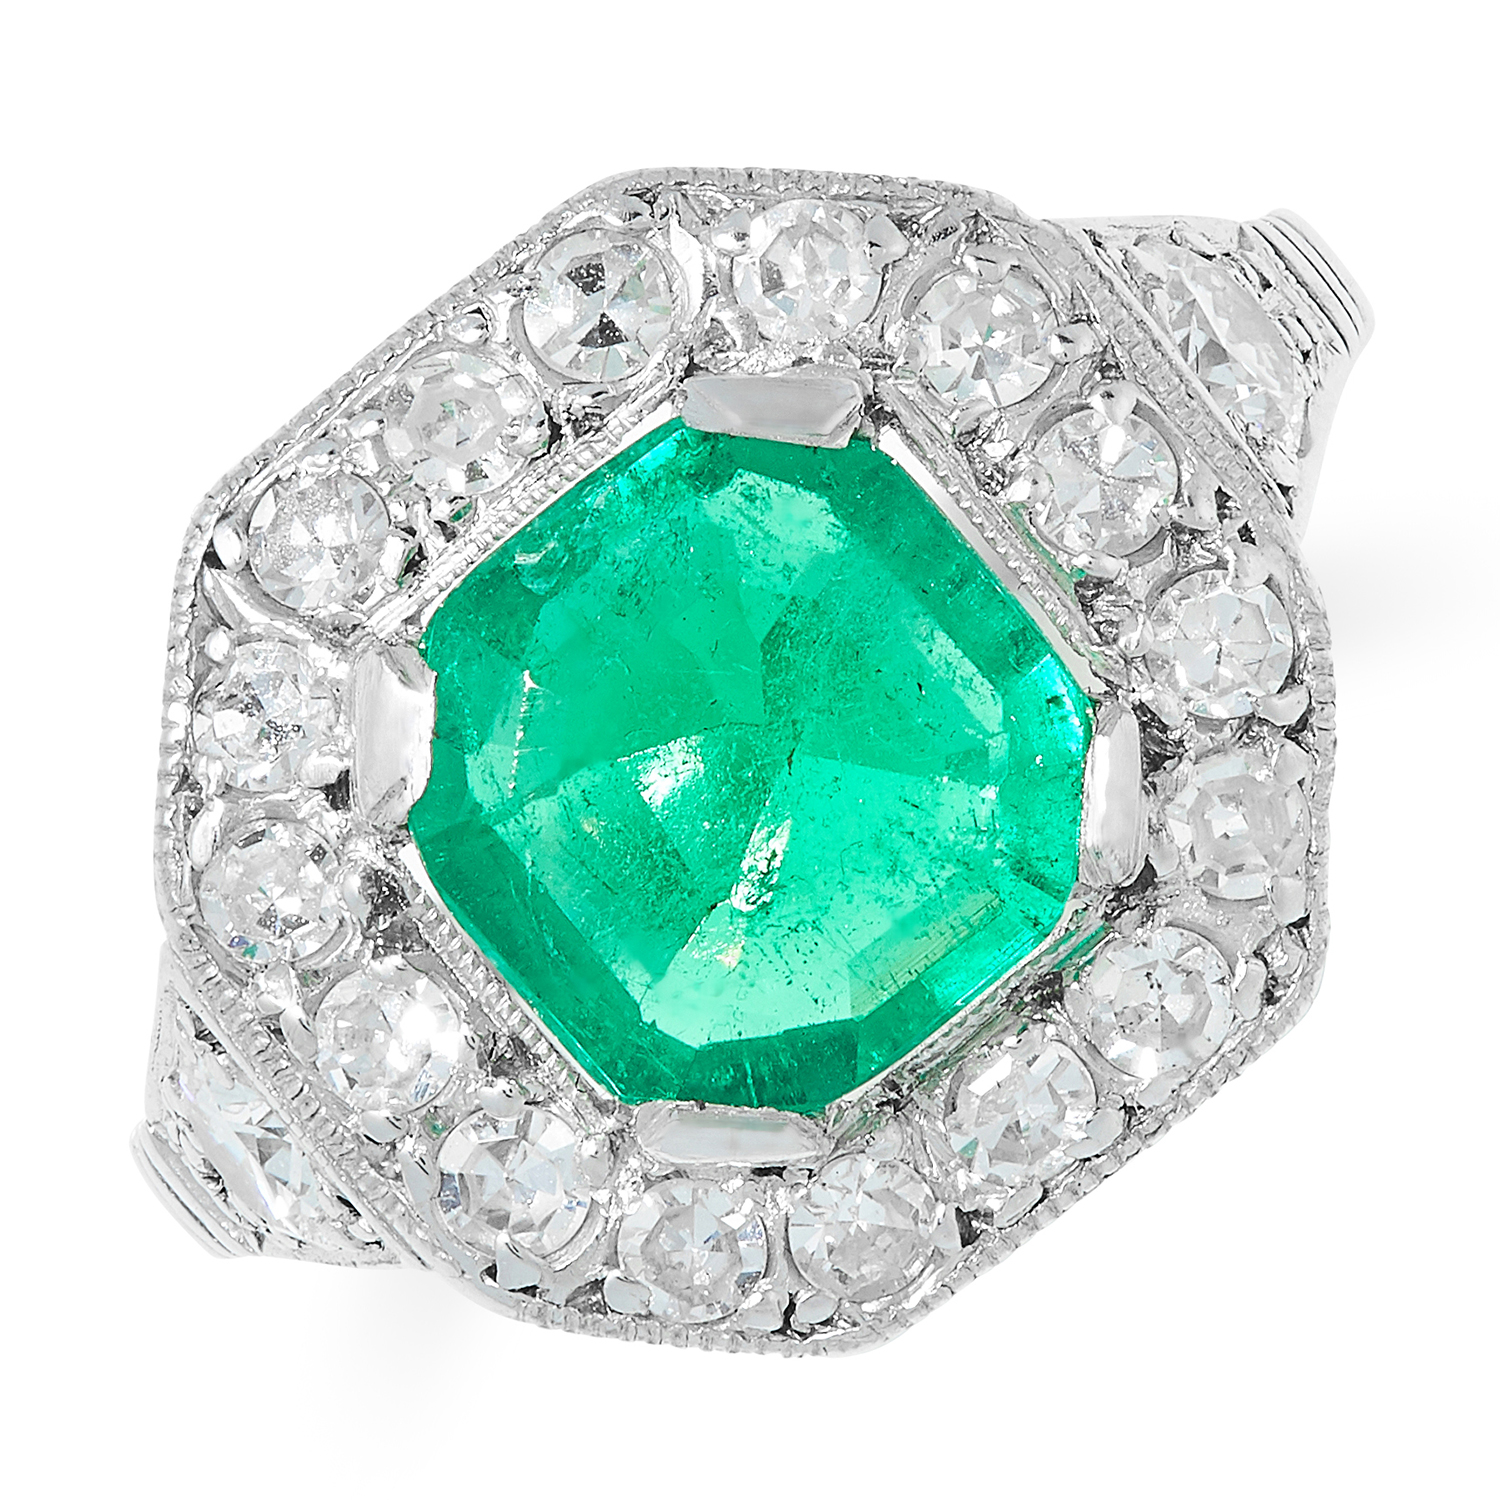 AN ART DECO COLOMBIAN EMERALD AND DIAMOND RING set with an emerald cut emerald of 1.42 carats within